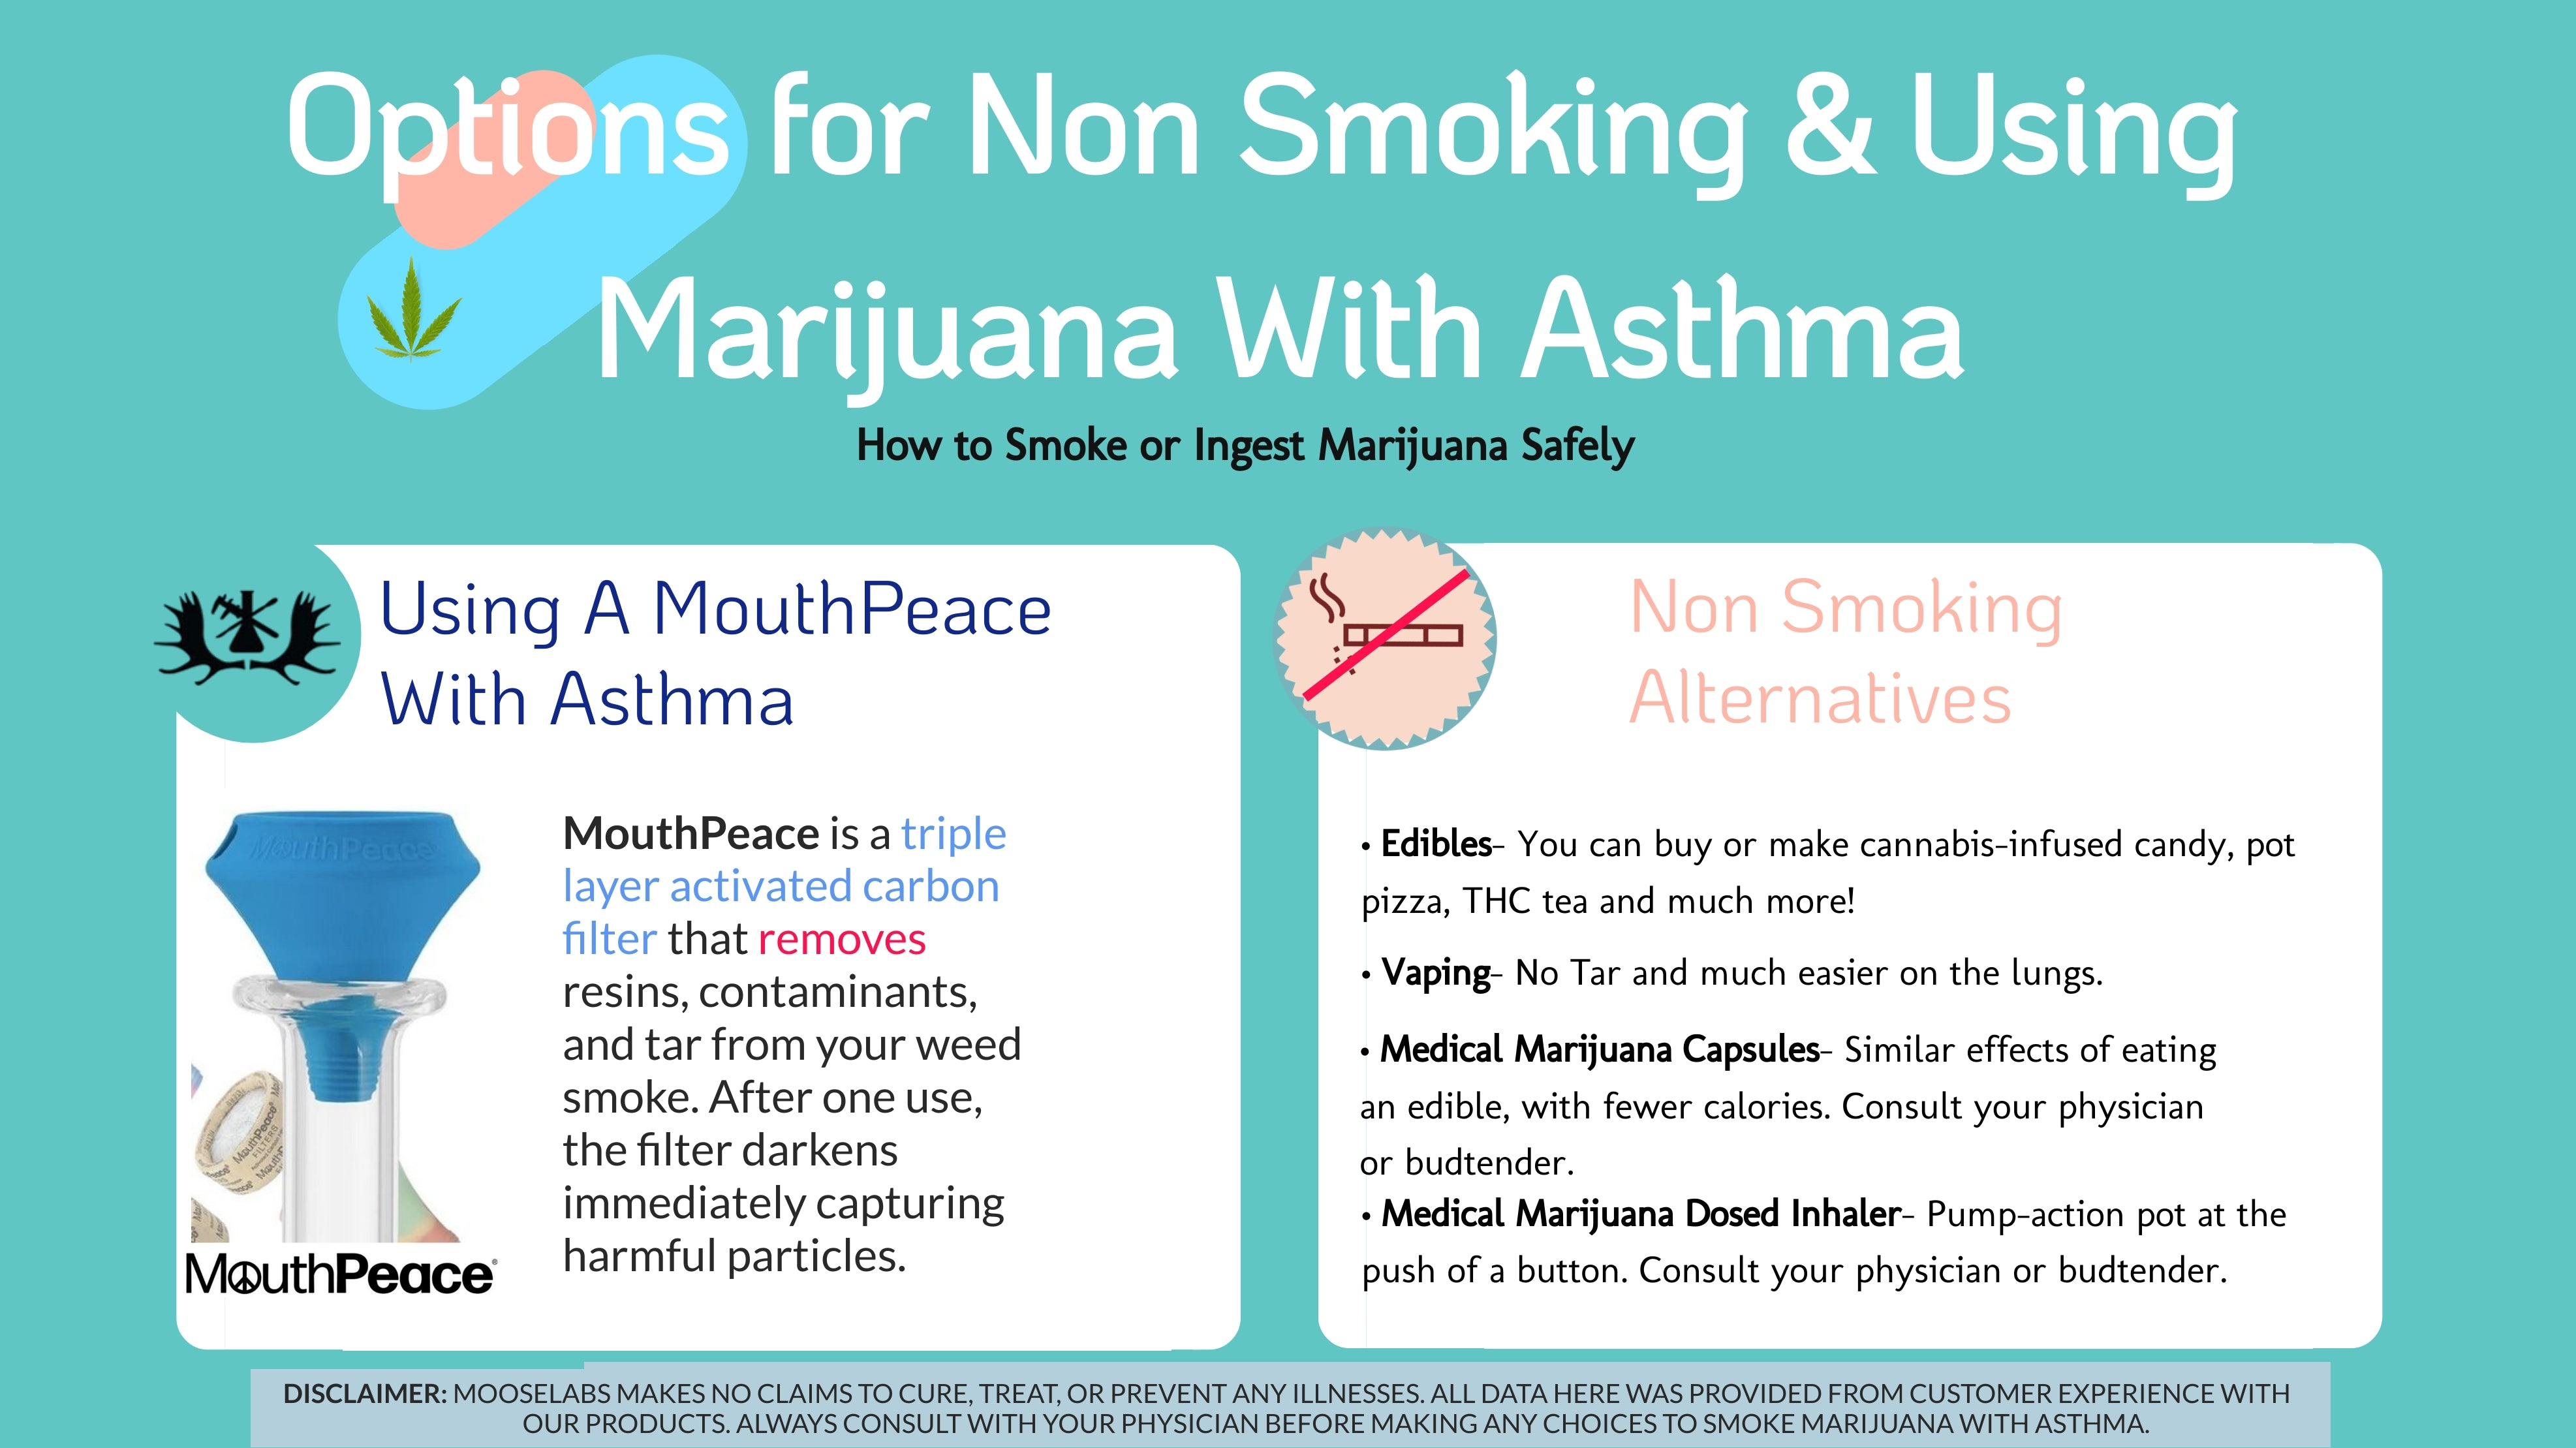 options for non smoking and using marijuana with asthma